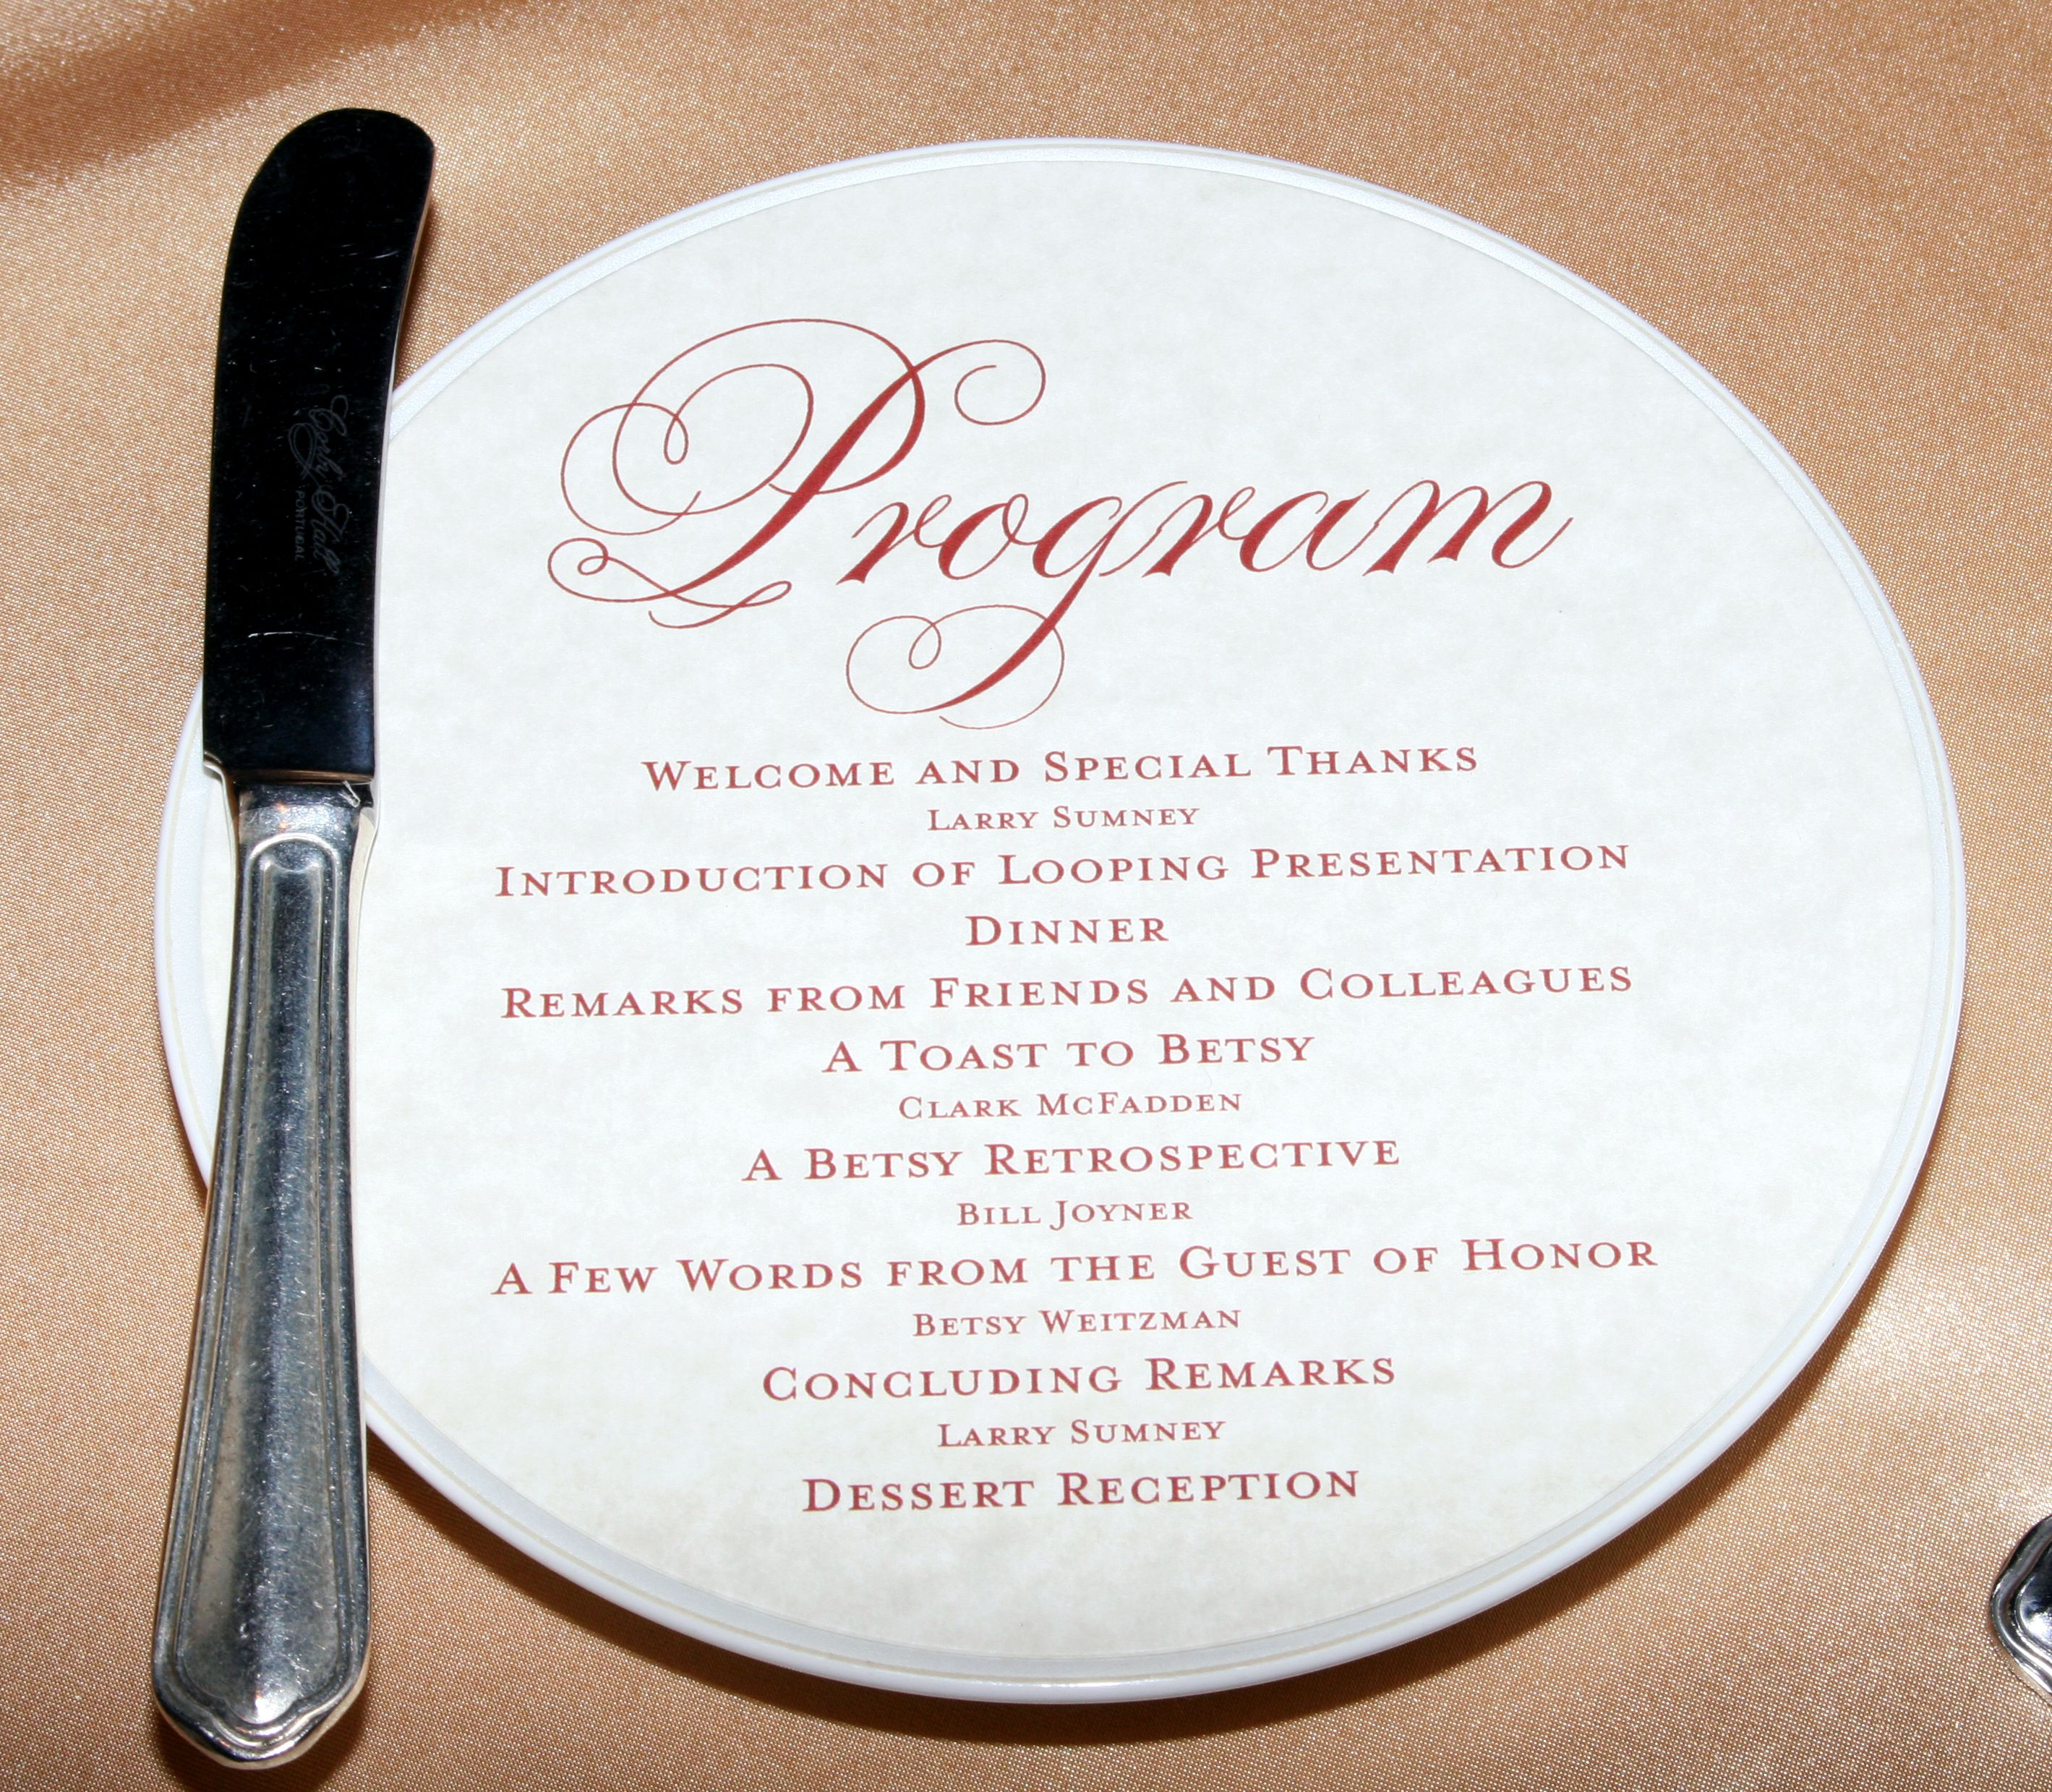 Ceremony Invitation  Like The Style   Arrow Of Light